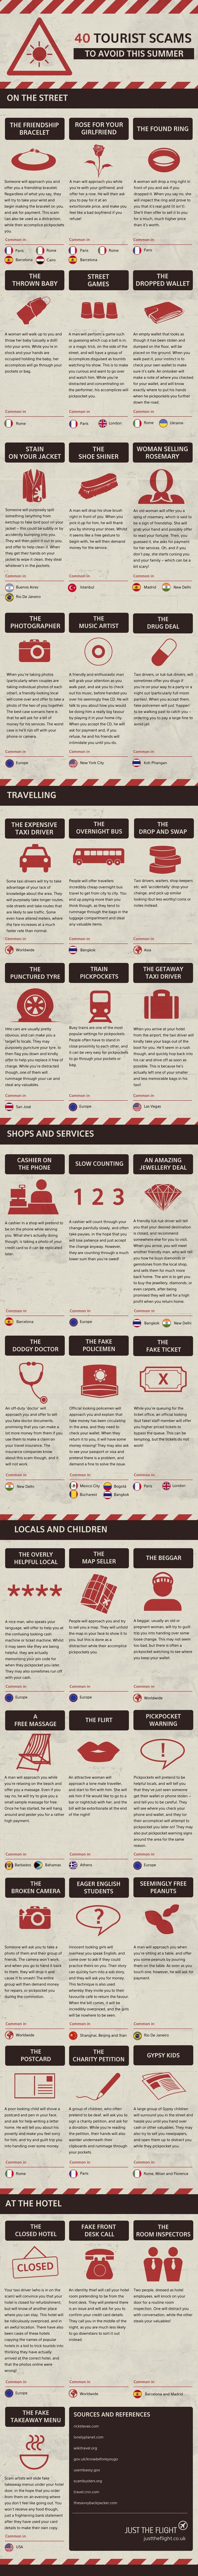 Don't fall for these common tourist scams!